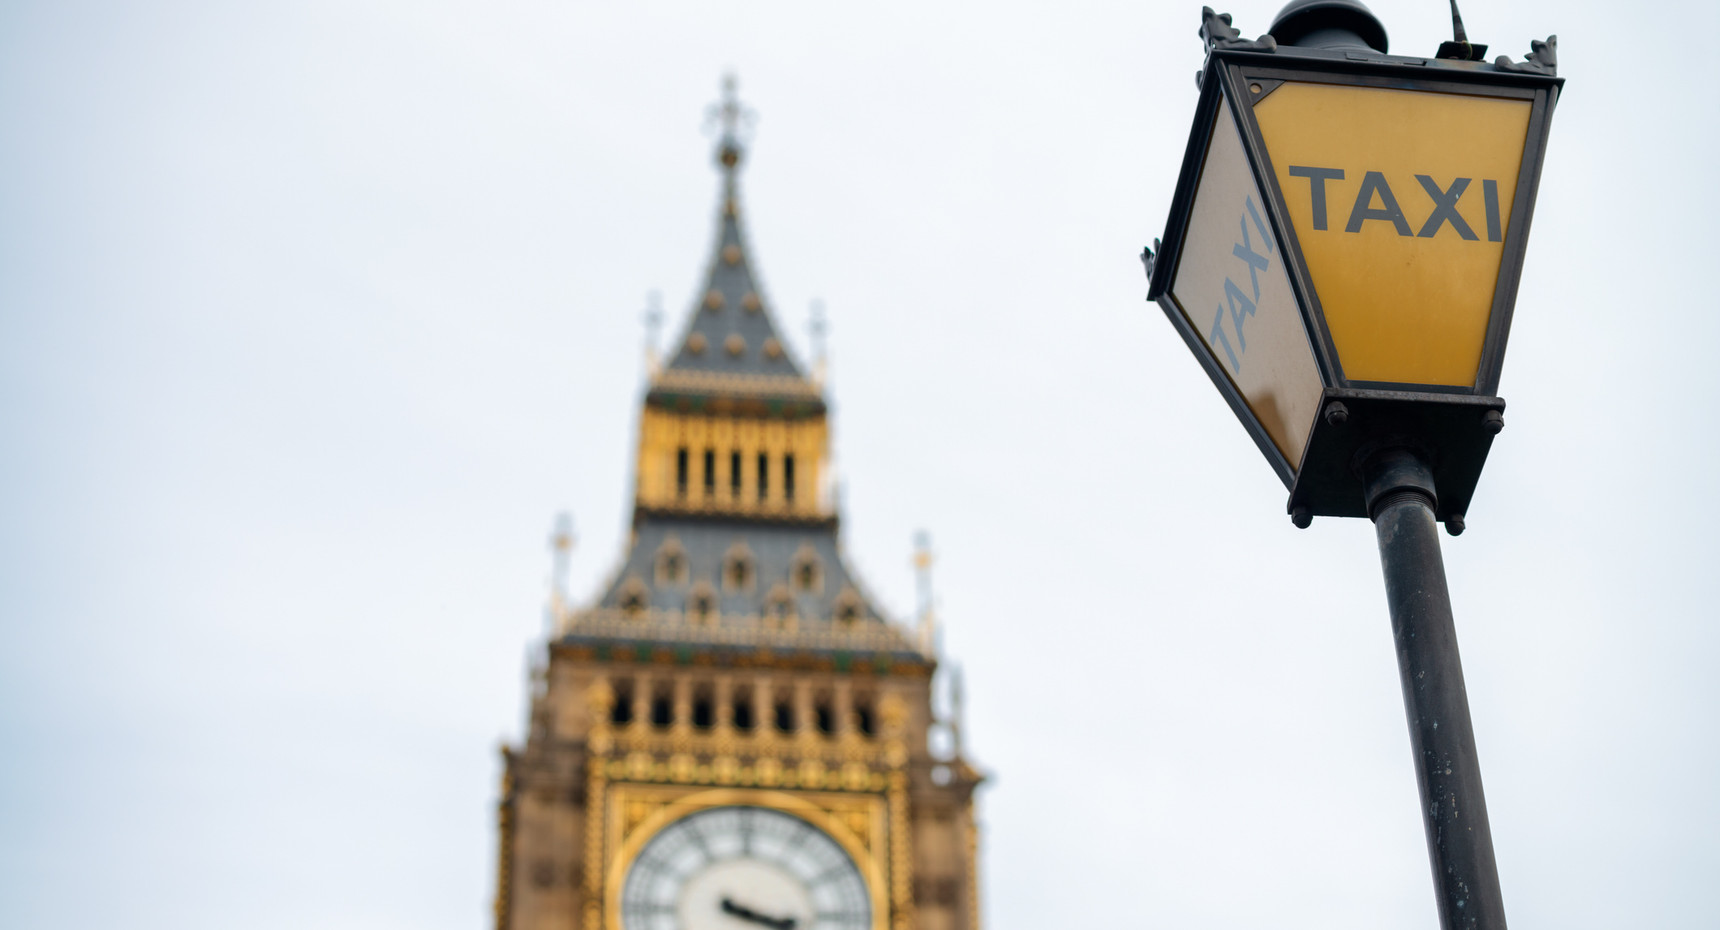 Taxi sign with Big Ben on background